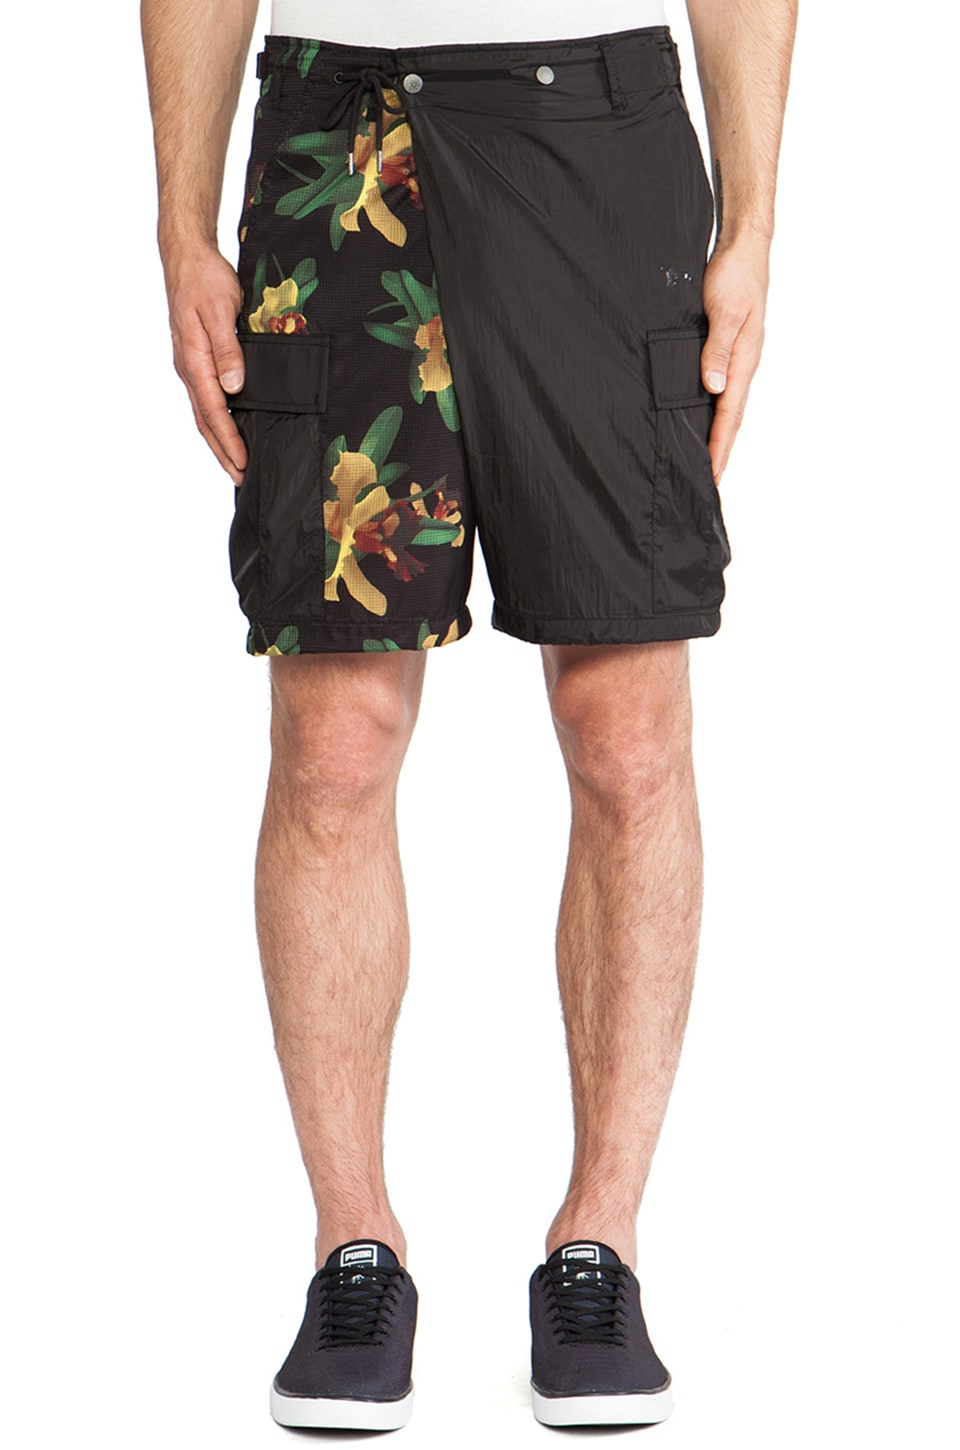 Puma by Mihara Performance Short Pants in Gothic Olive & Aloha Print